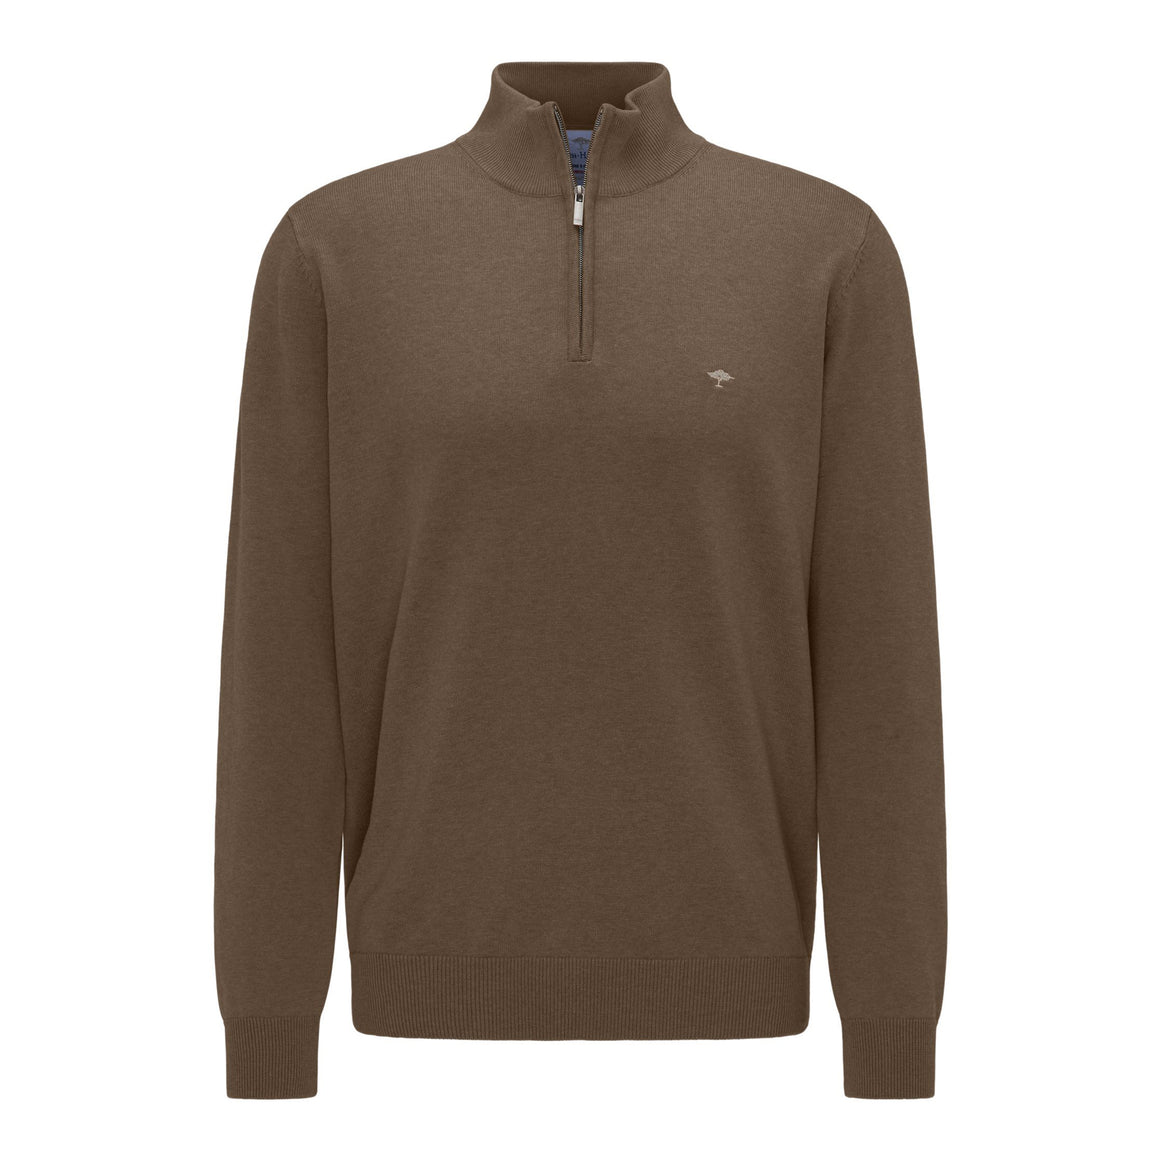 Superfine Cotton Troyer Zip Sweater for Men in Biscotti